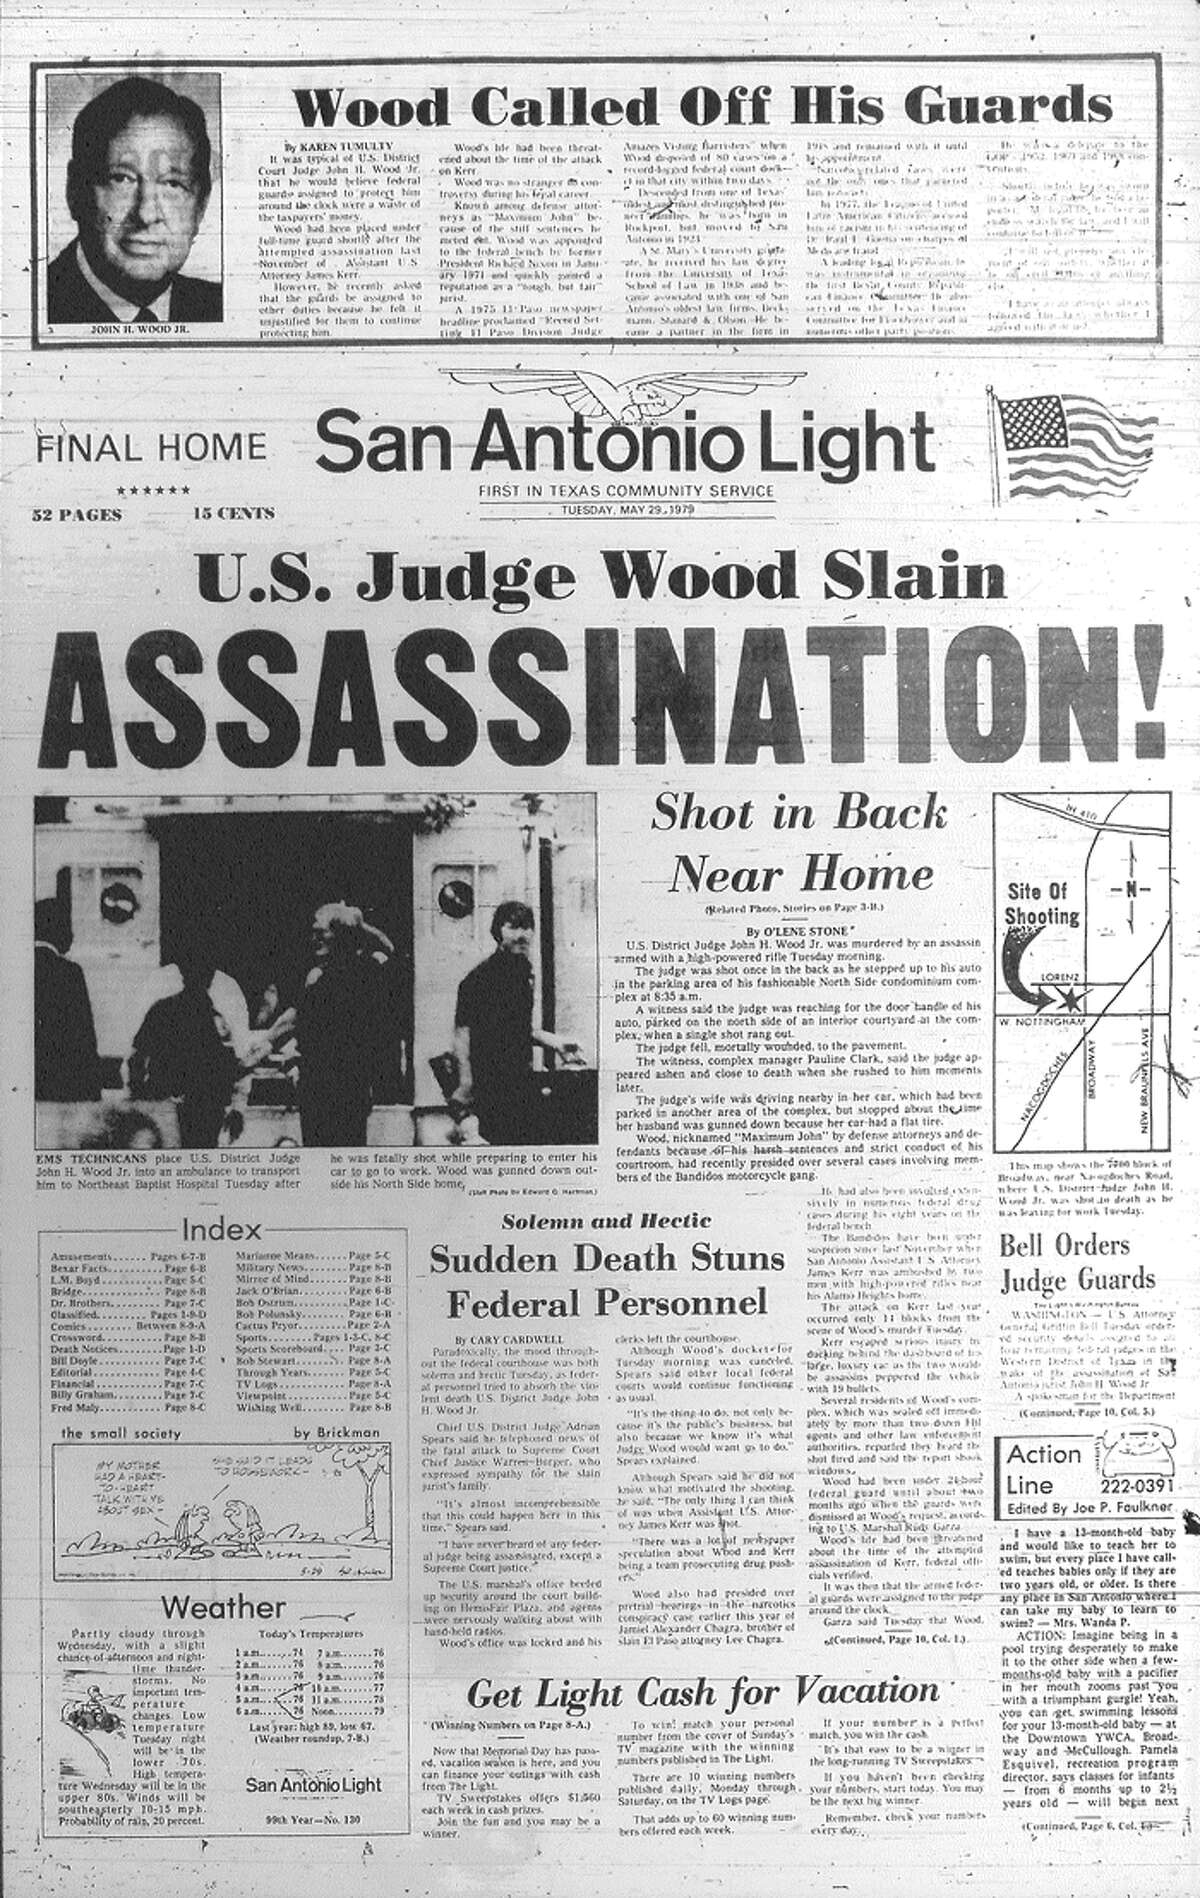 TUESDAY, MAY 29, 1979: U.S. District Judge John H. Wood Jr. is assassinated near his home in San Antonio. Wood is the first federal judge killed in the 20th Century. Hitman Charles Harrelson, estranged father of actor Woody Harrelson, is later convicted of the murder.